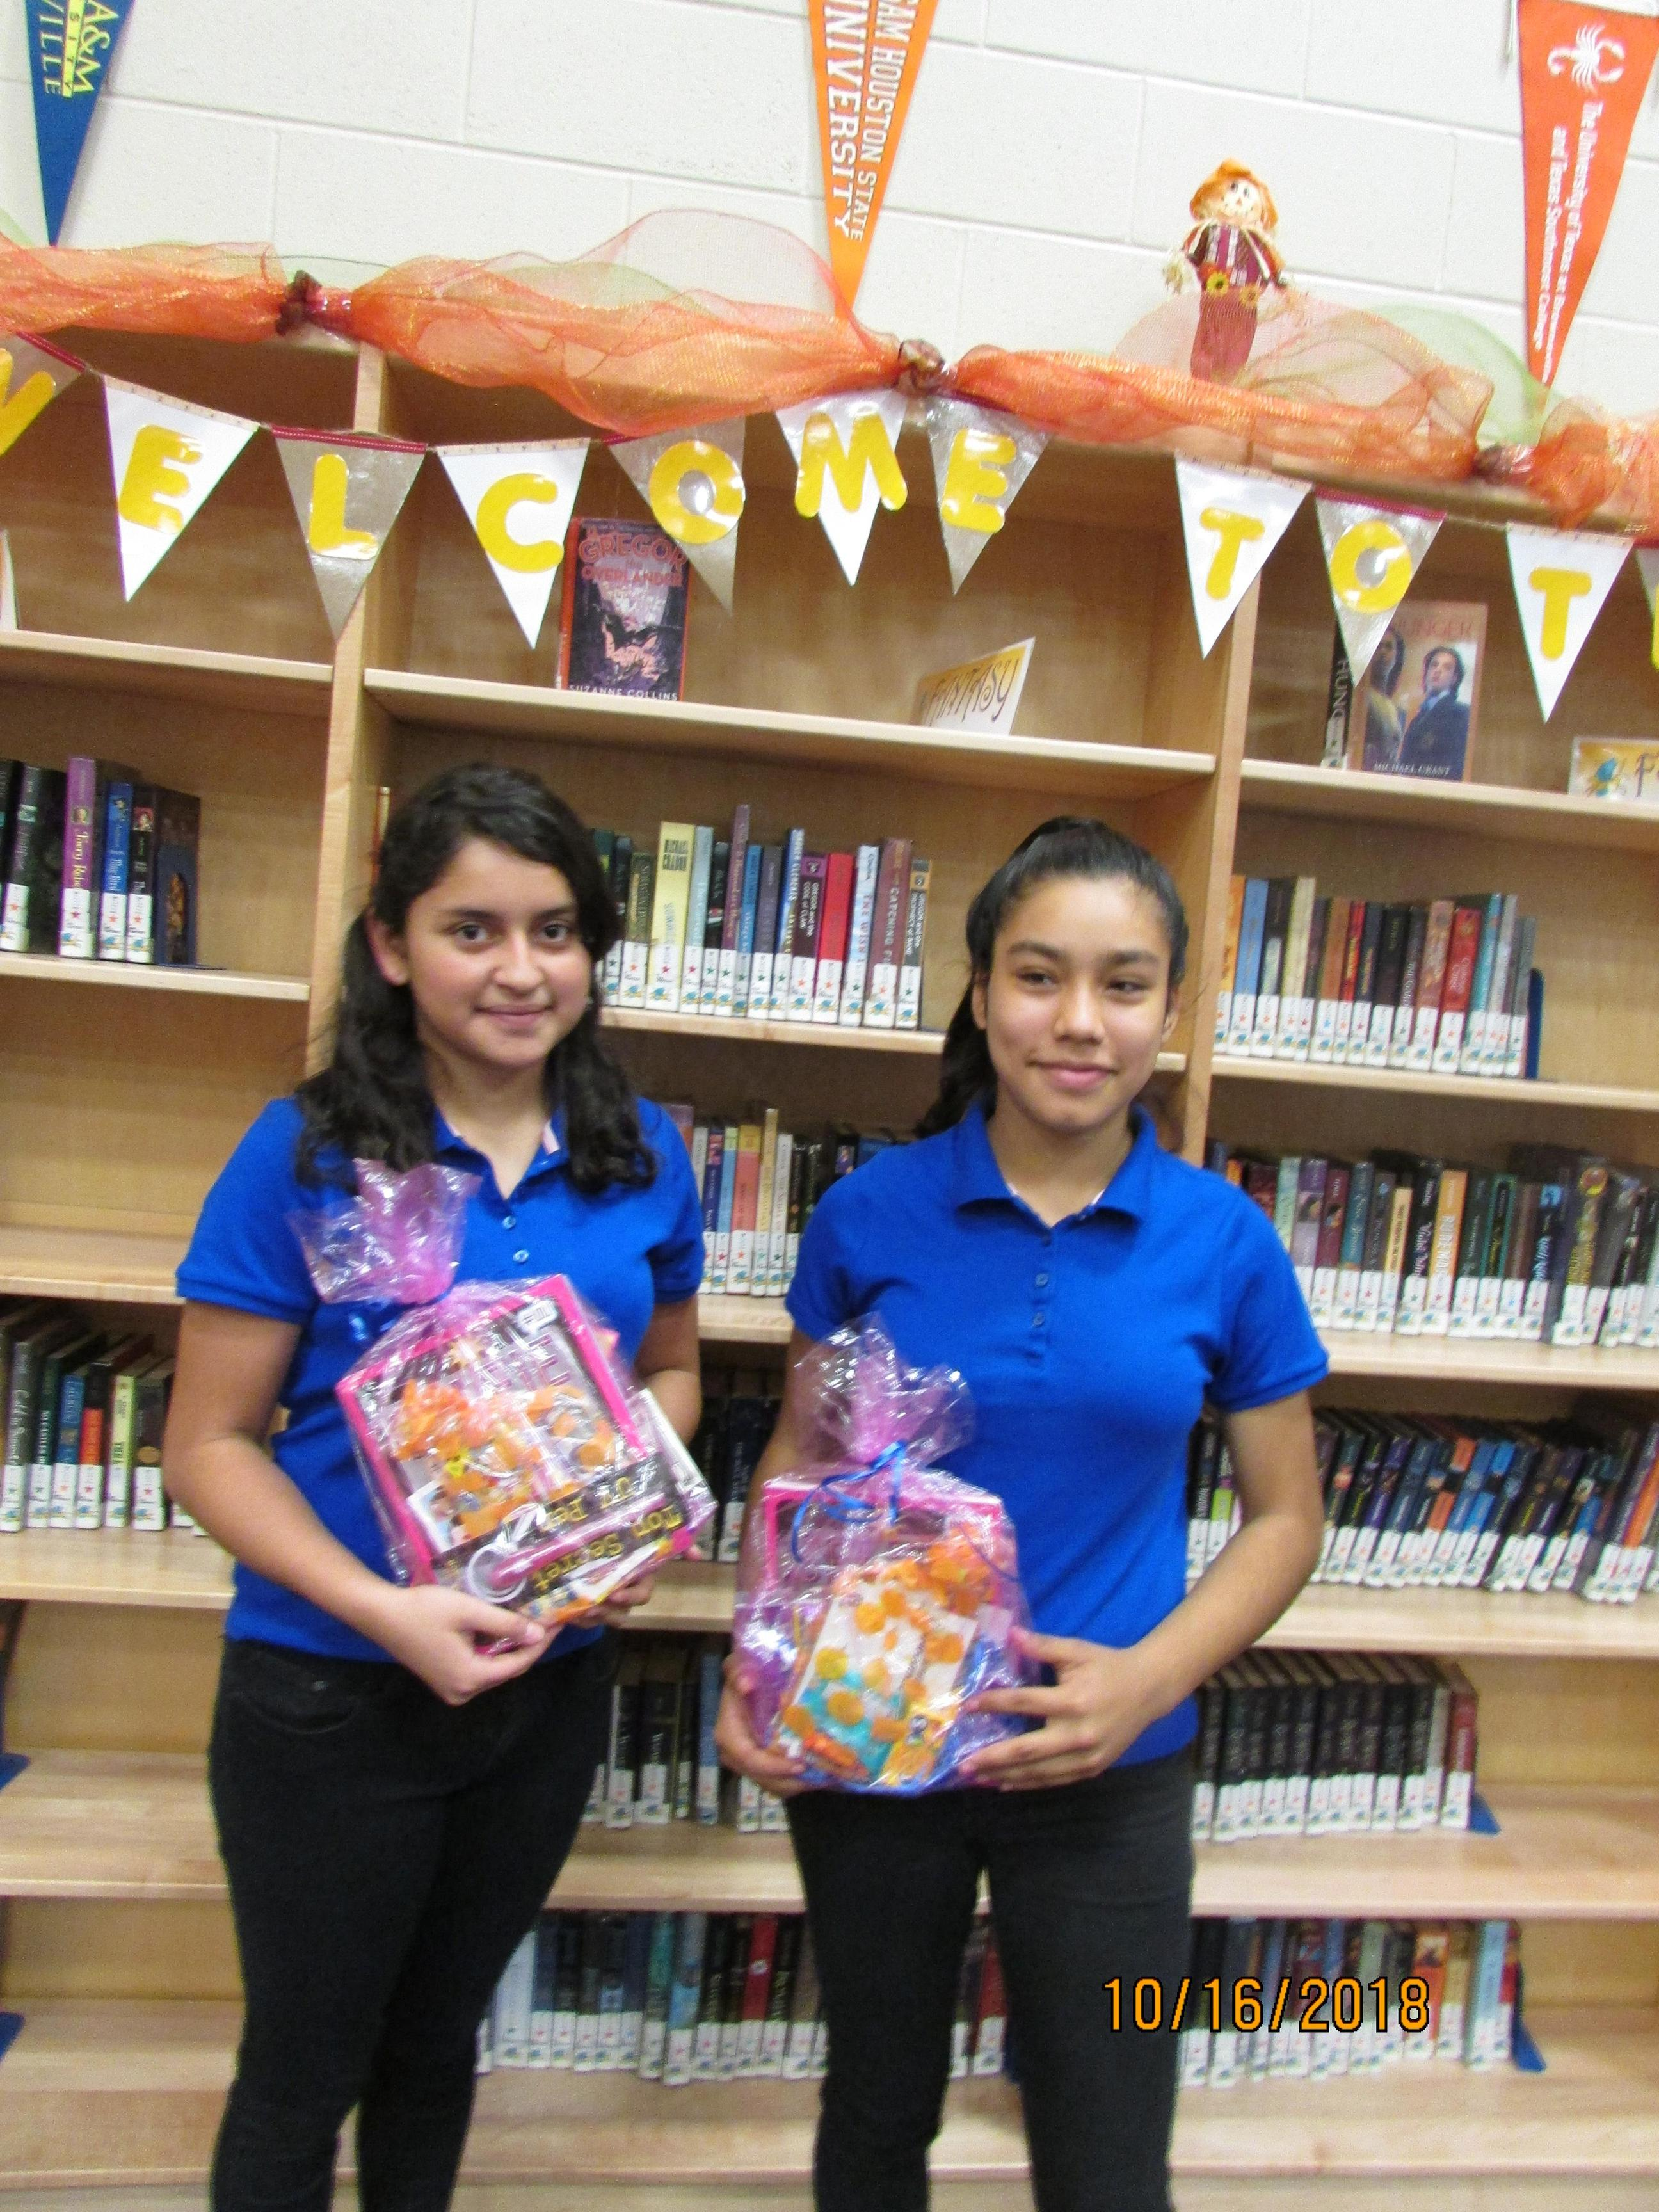 Photo of students who won 'Guess How Many Books?' contest.